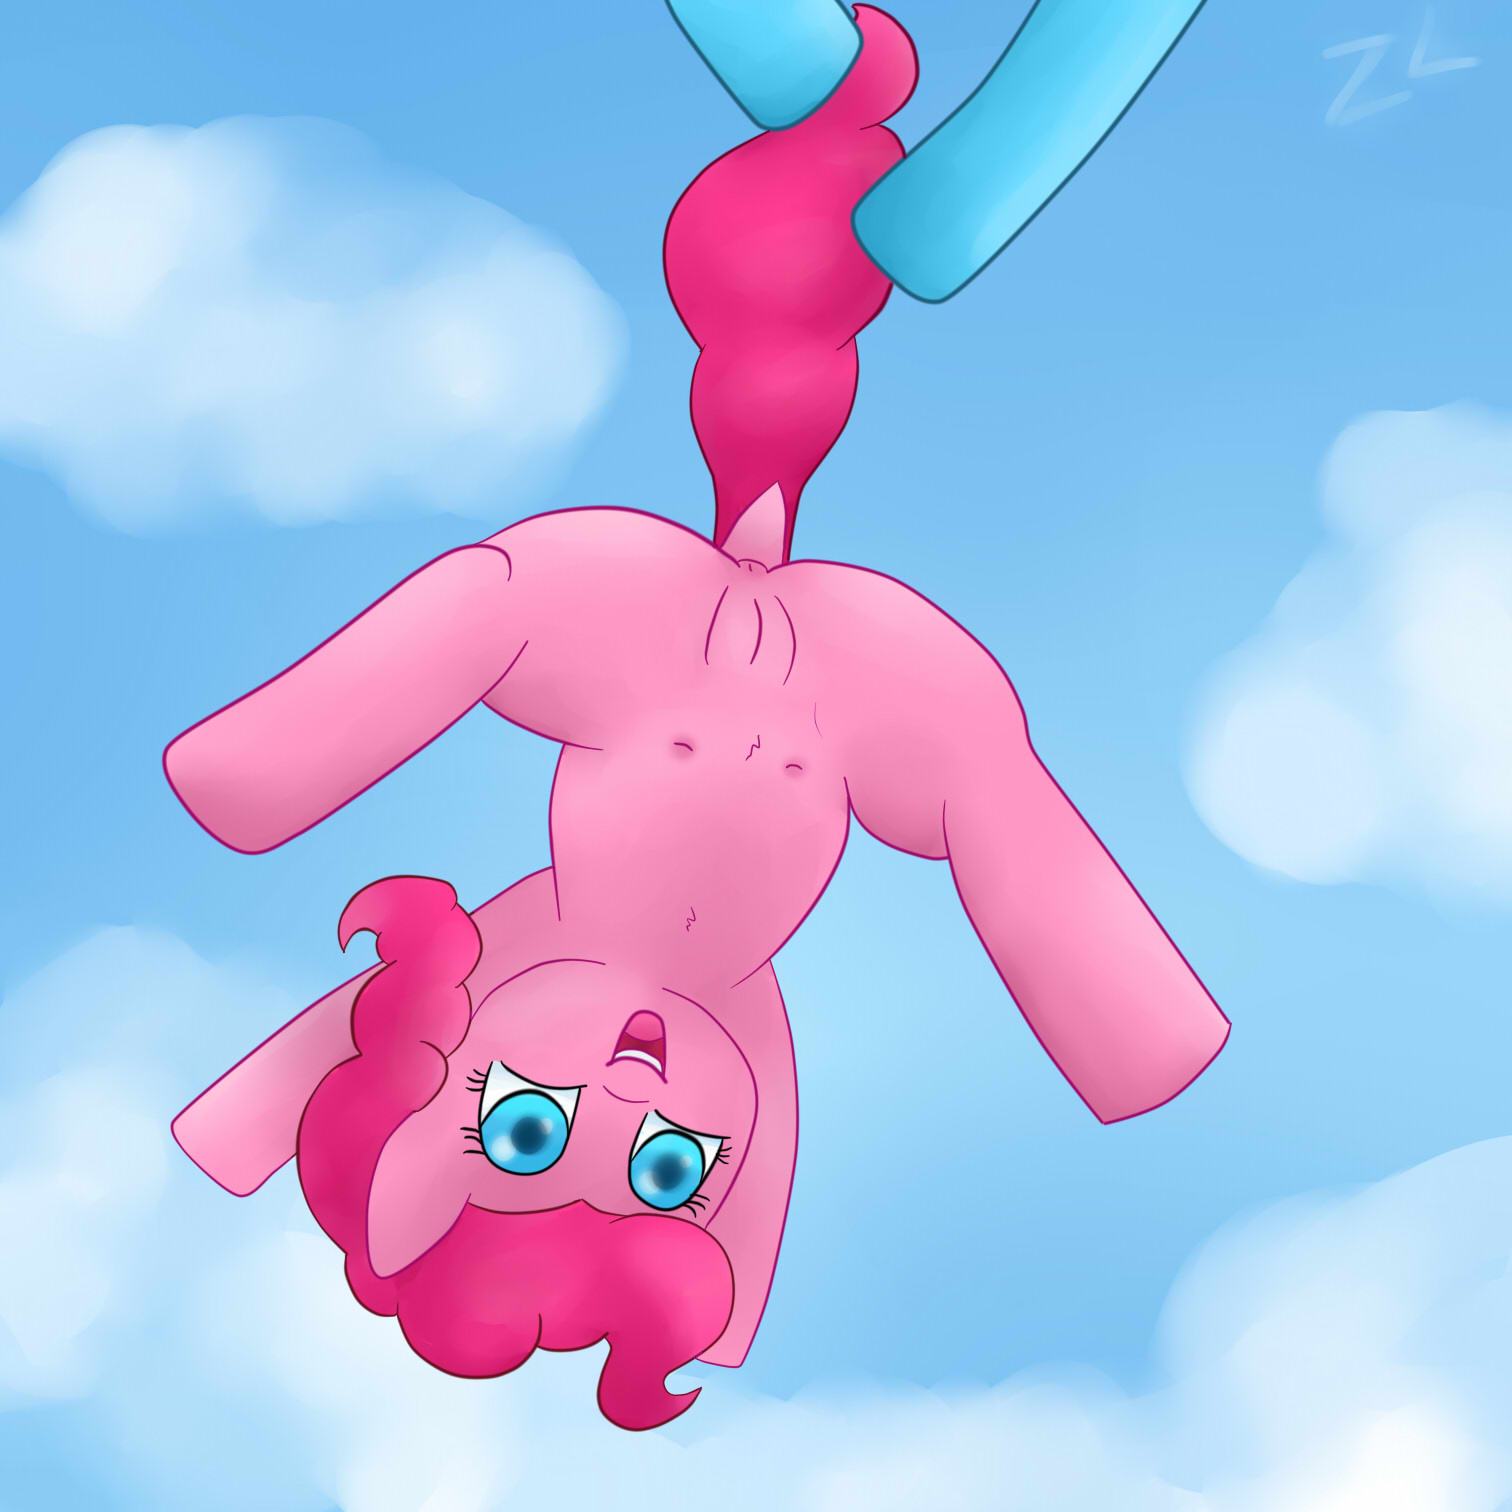 Pinkie is in the Air